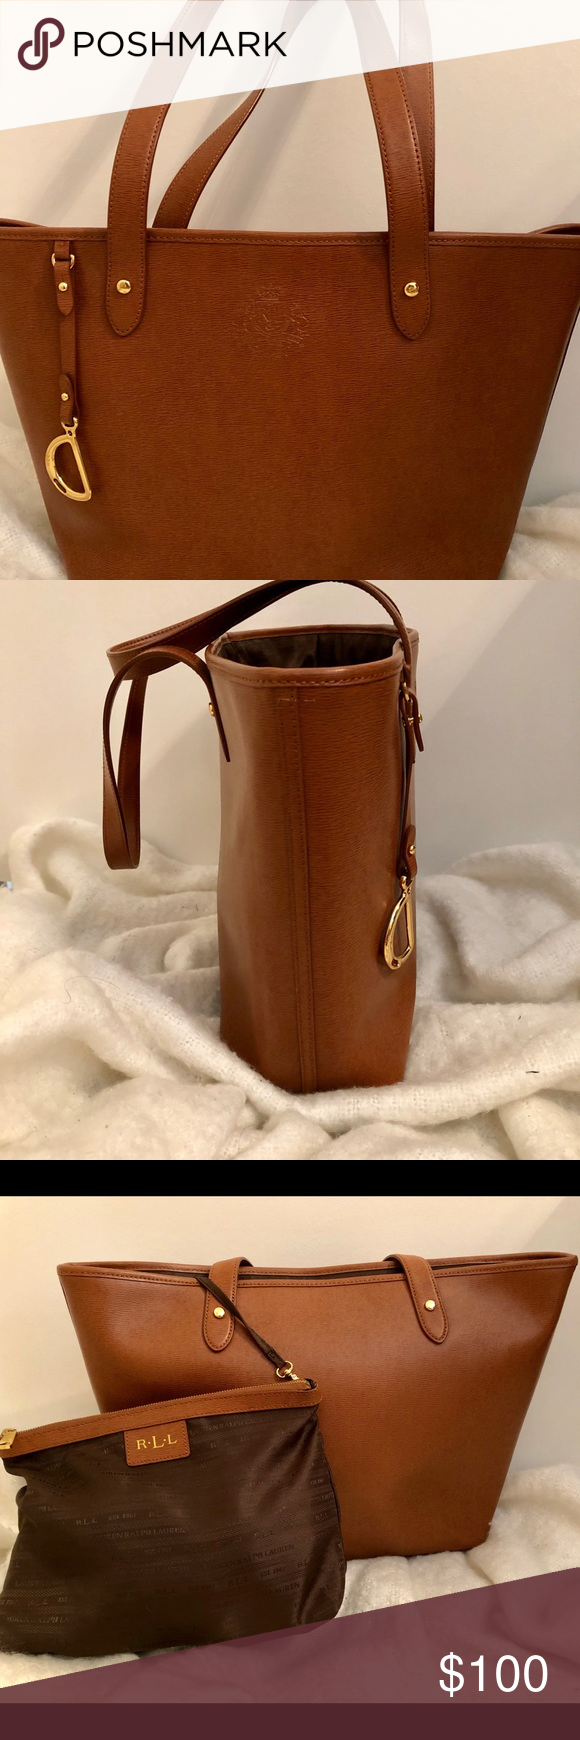 Ralph Lauren Leather tote Camel colored leather tote by Ralph Lauren. Extra  nylon detachable pouch a5aa952aa396e